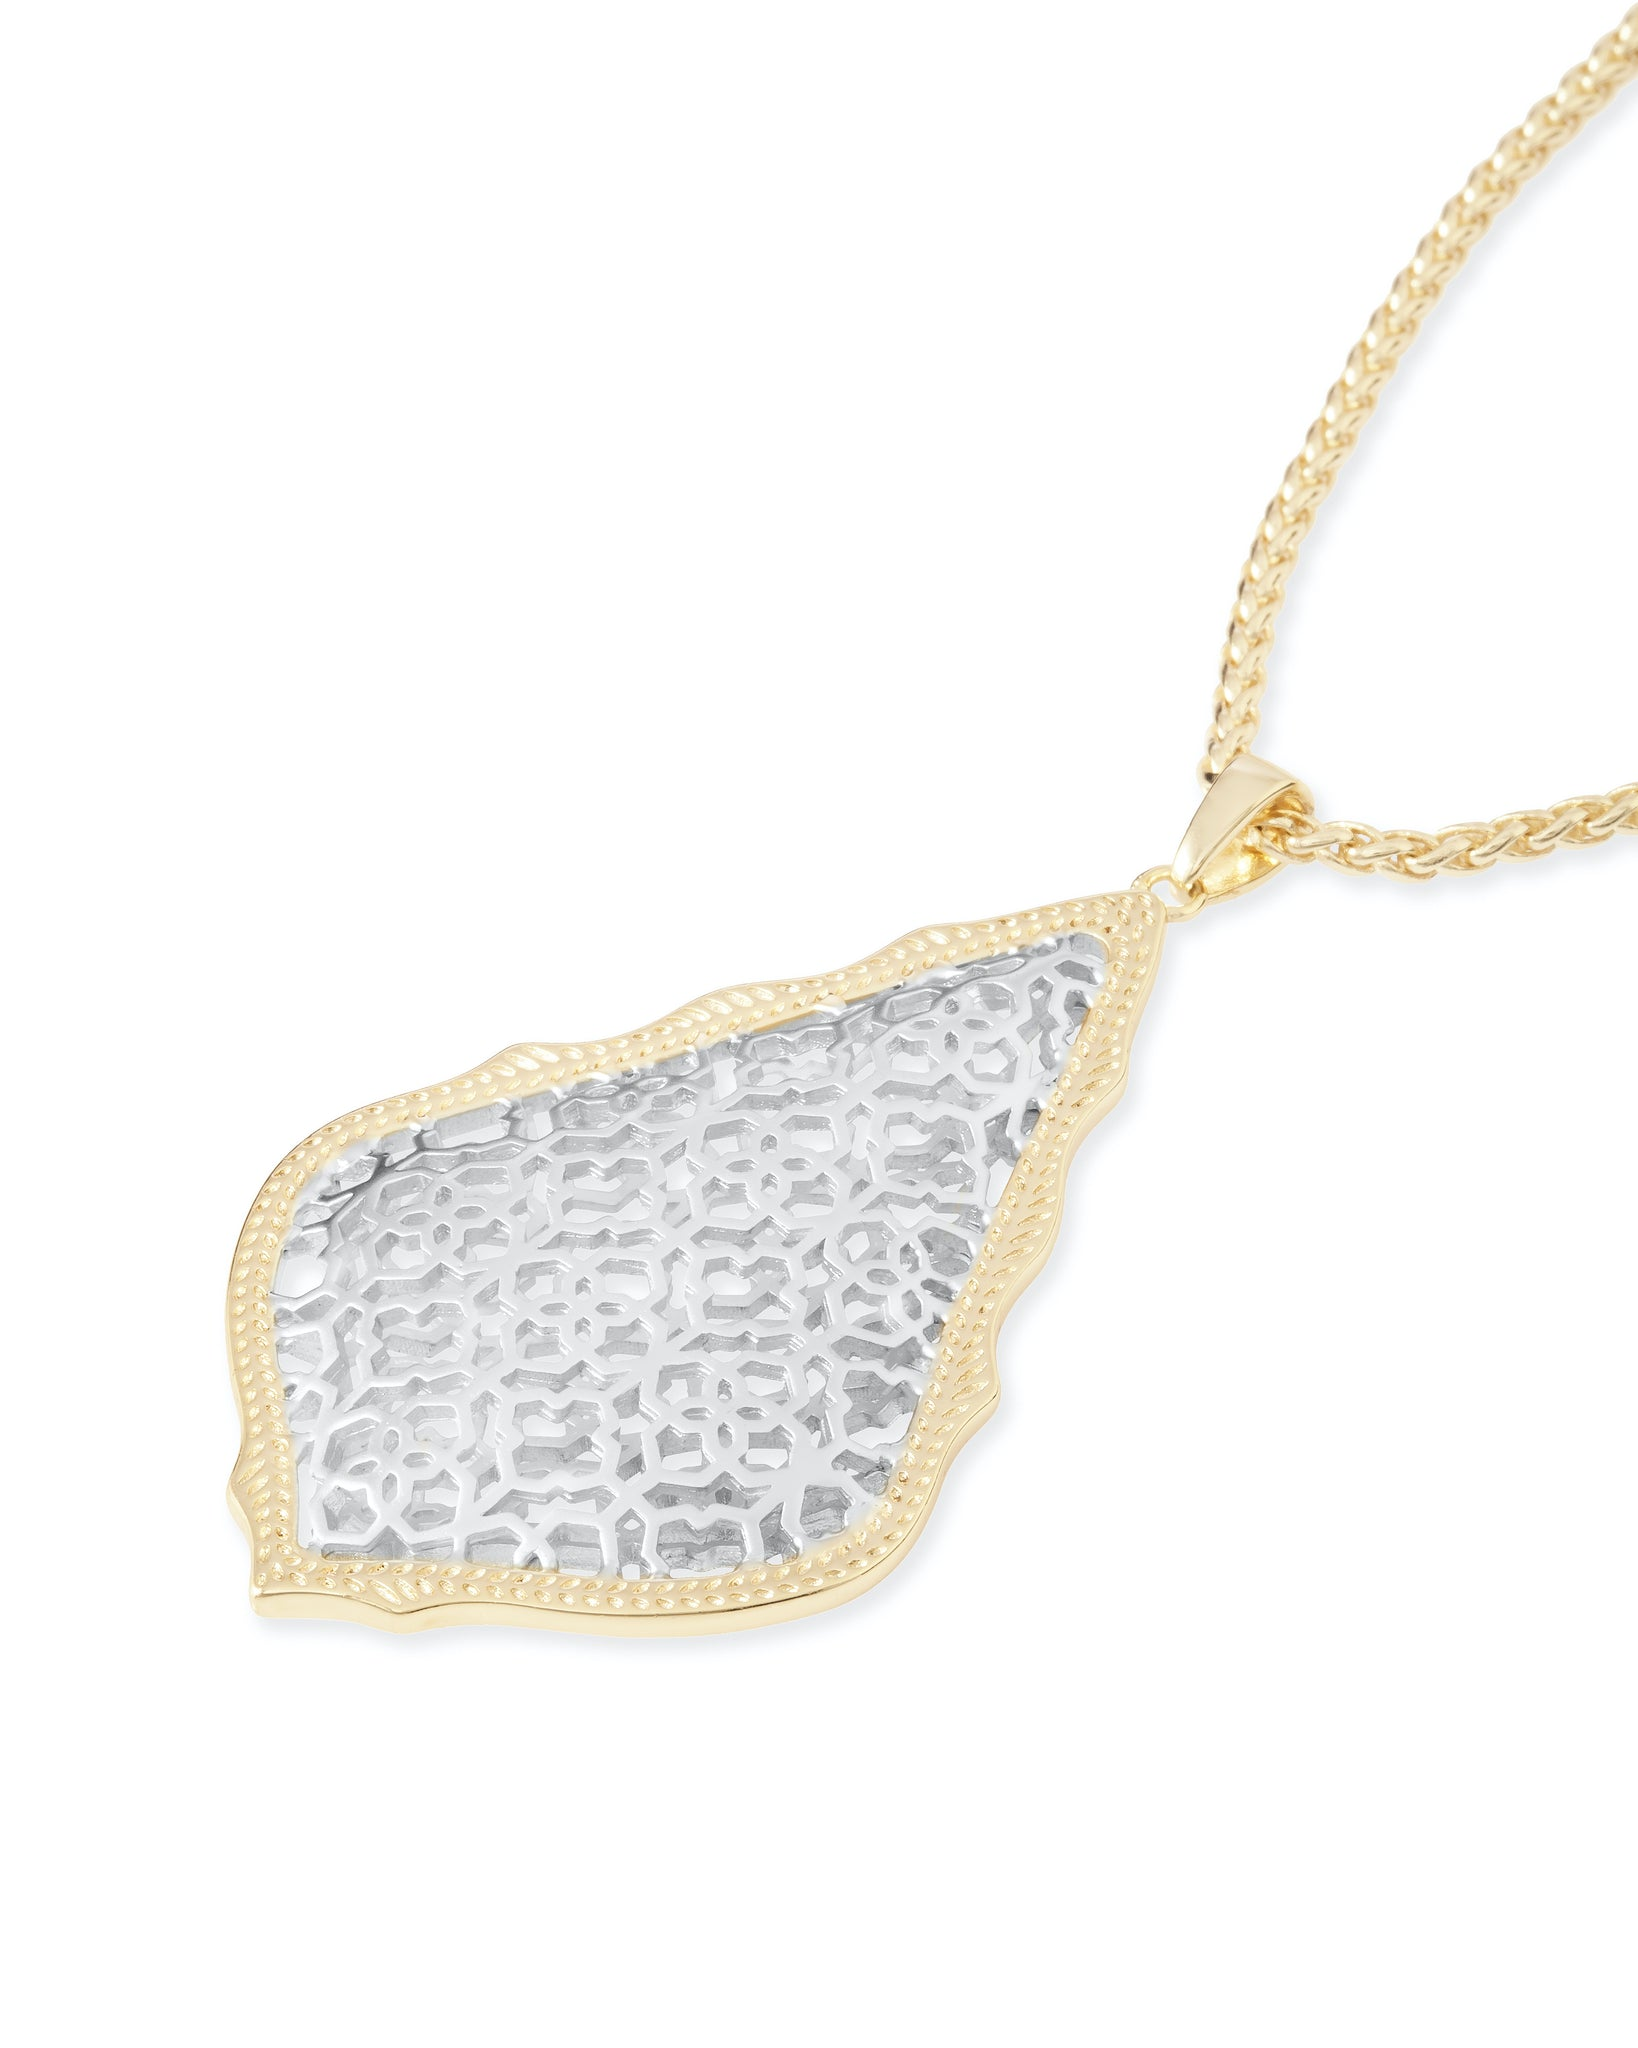 Kendra Scott Aiden Necklace - Showroom56